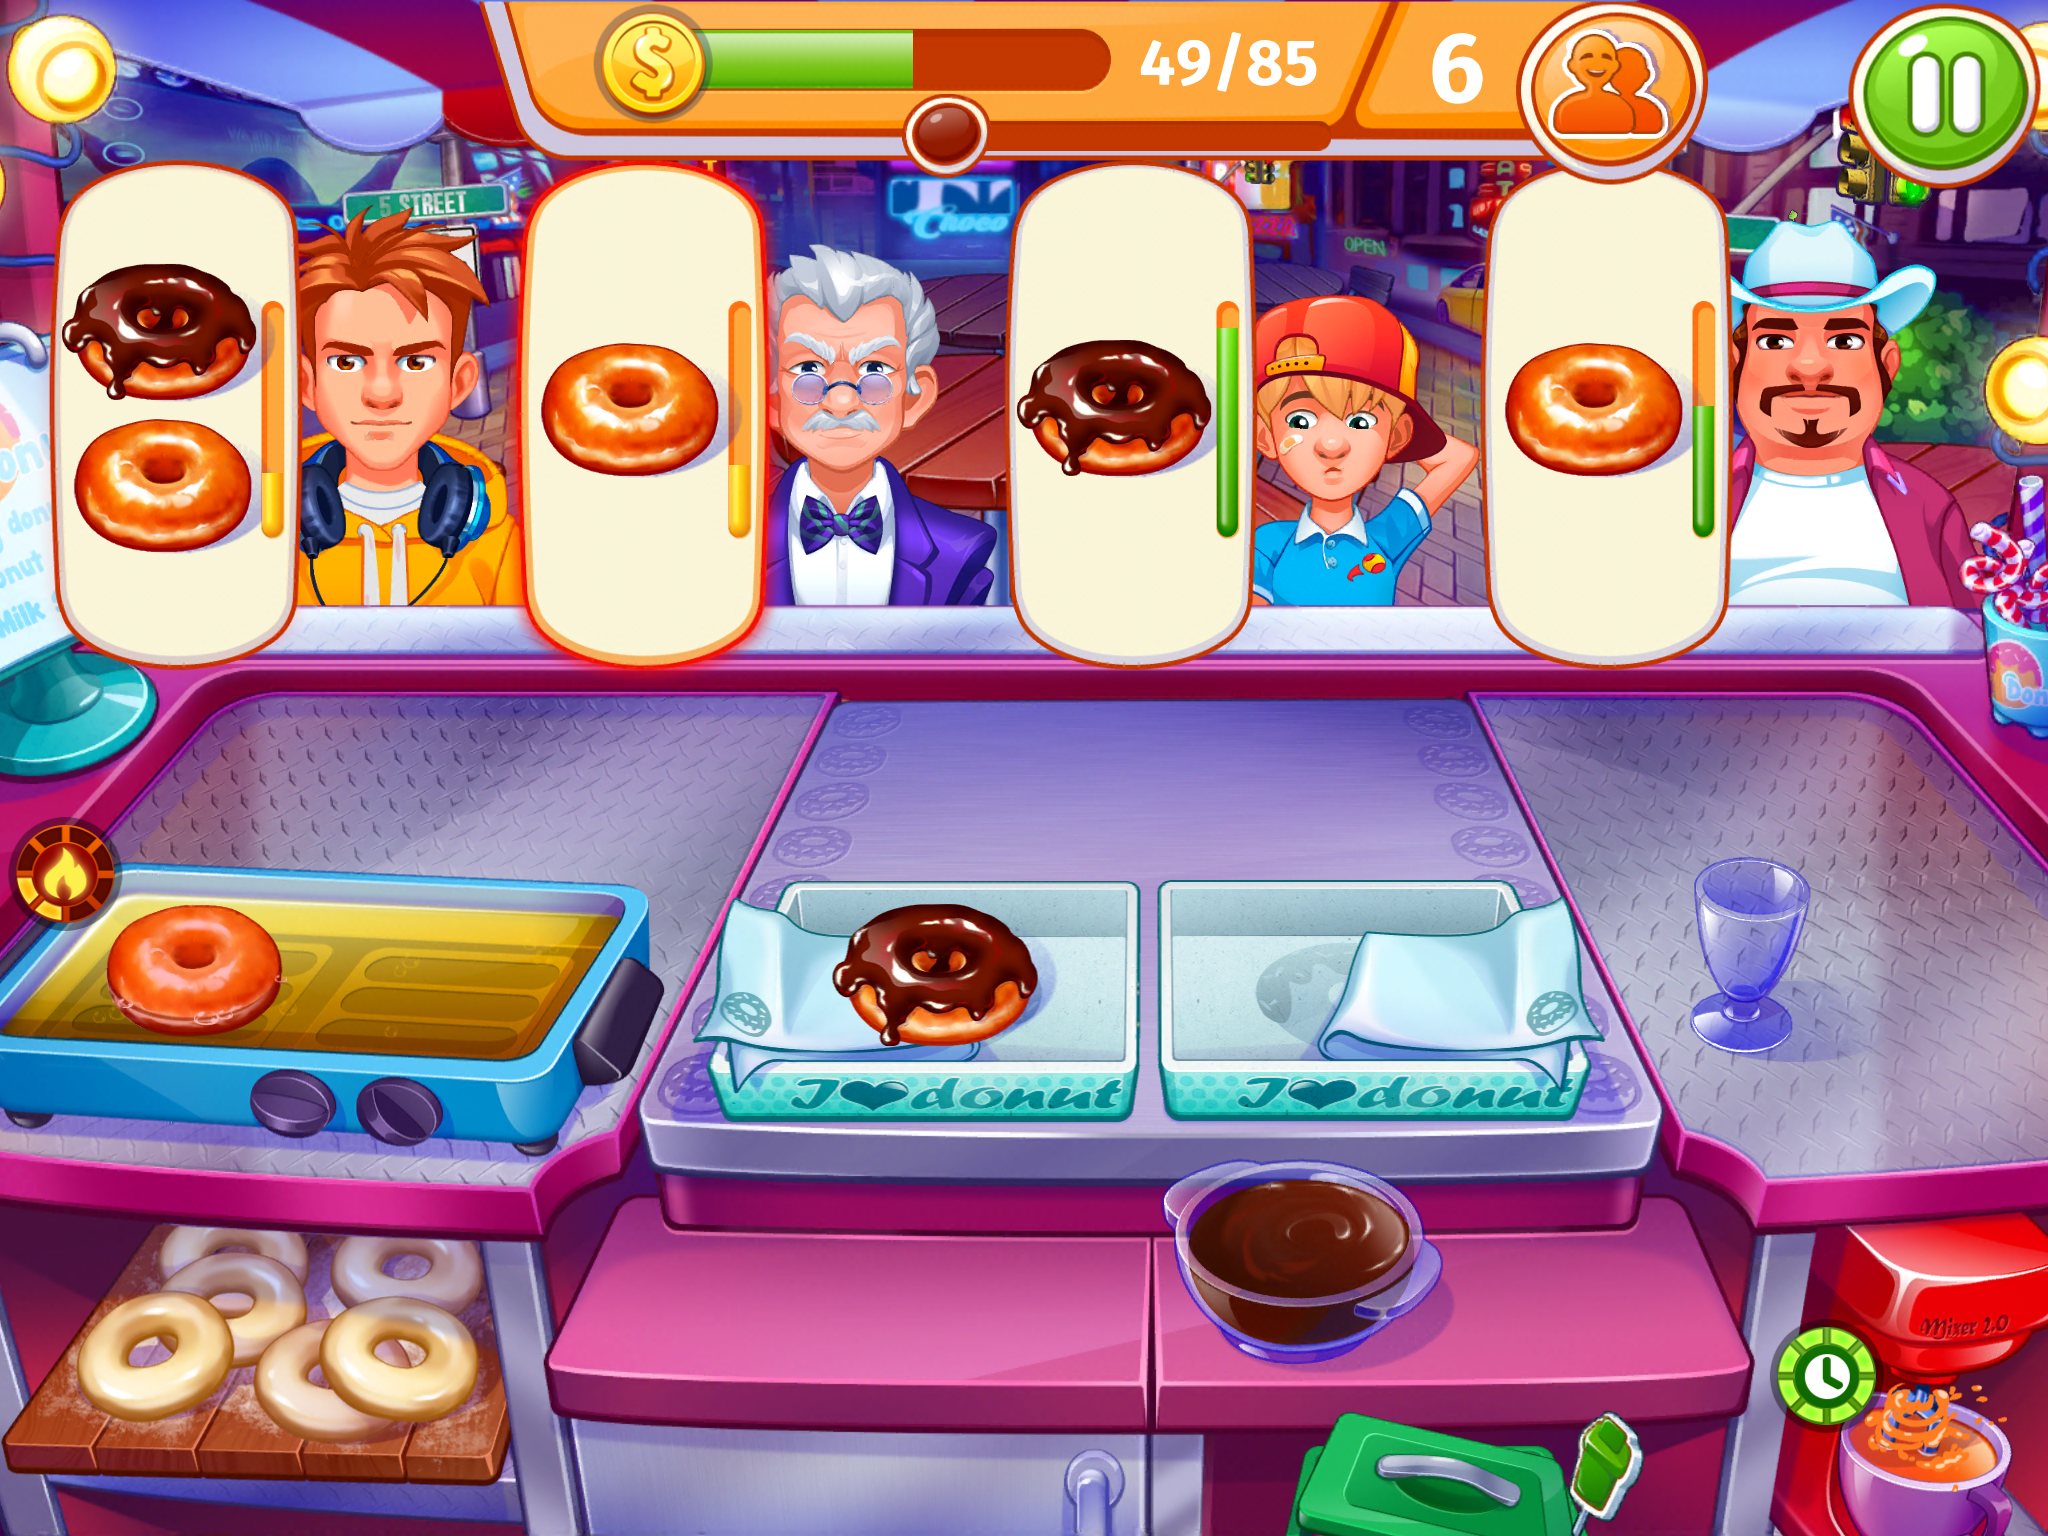 Screenshot of Cooking Madness Android game of donuts being served to customers